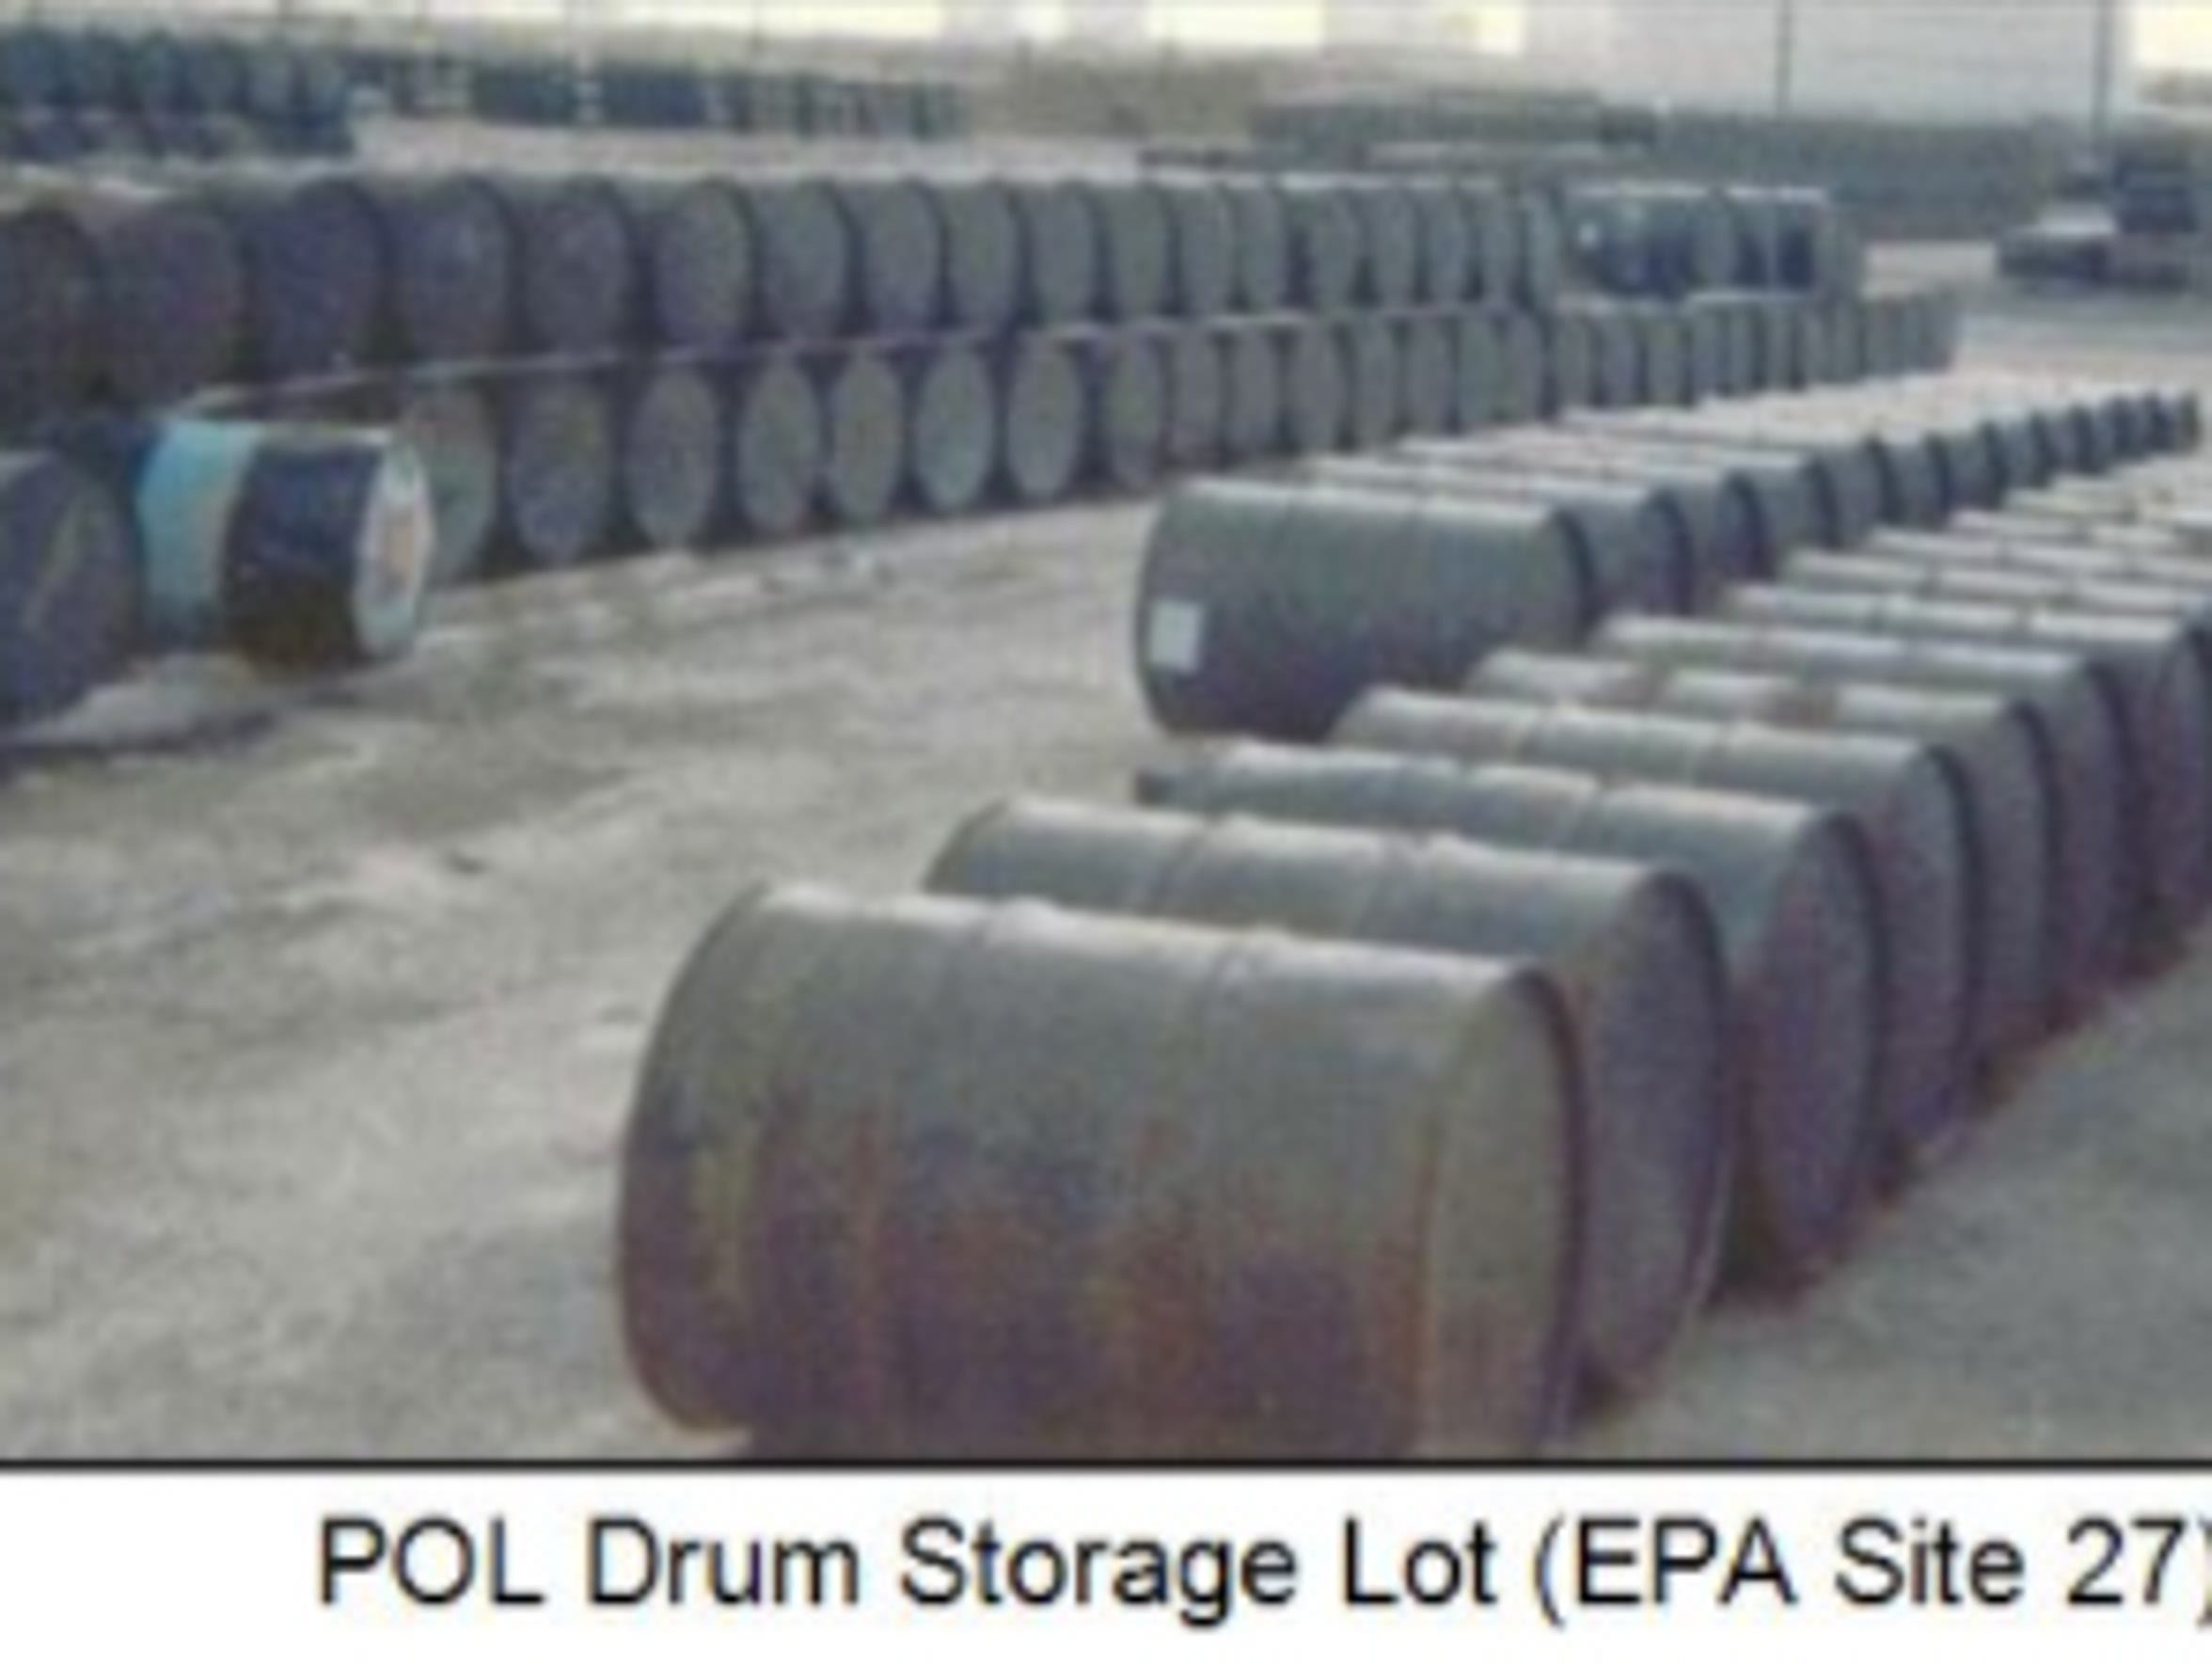 A photo of a drum storage lot at Andersen Air Force